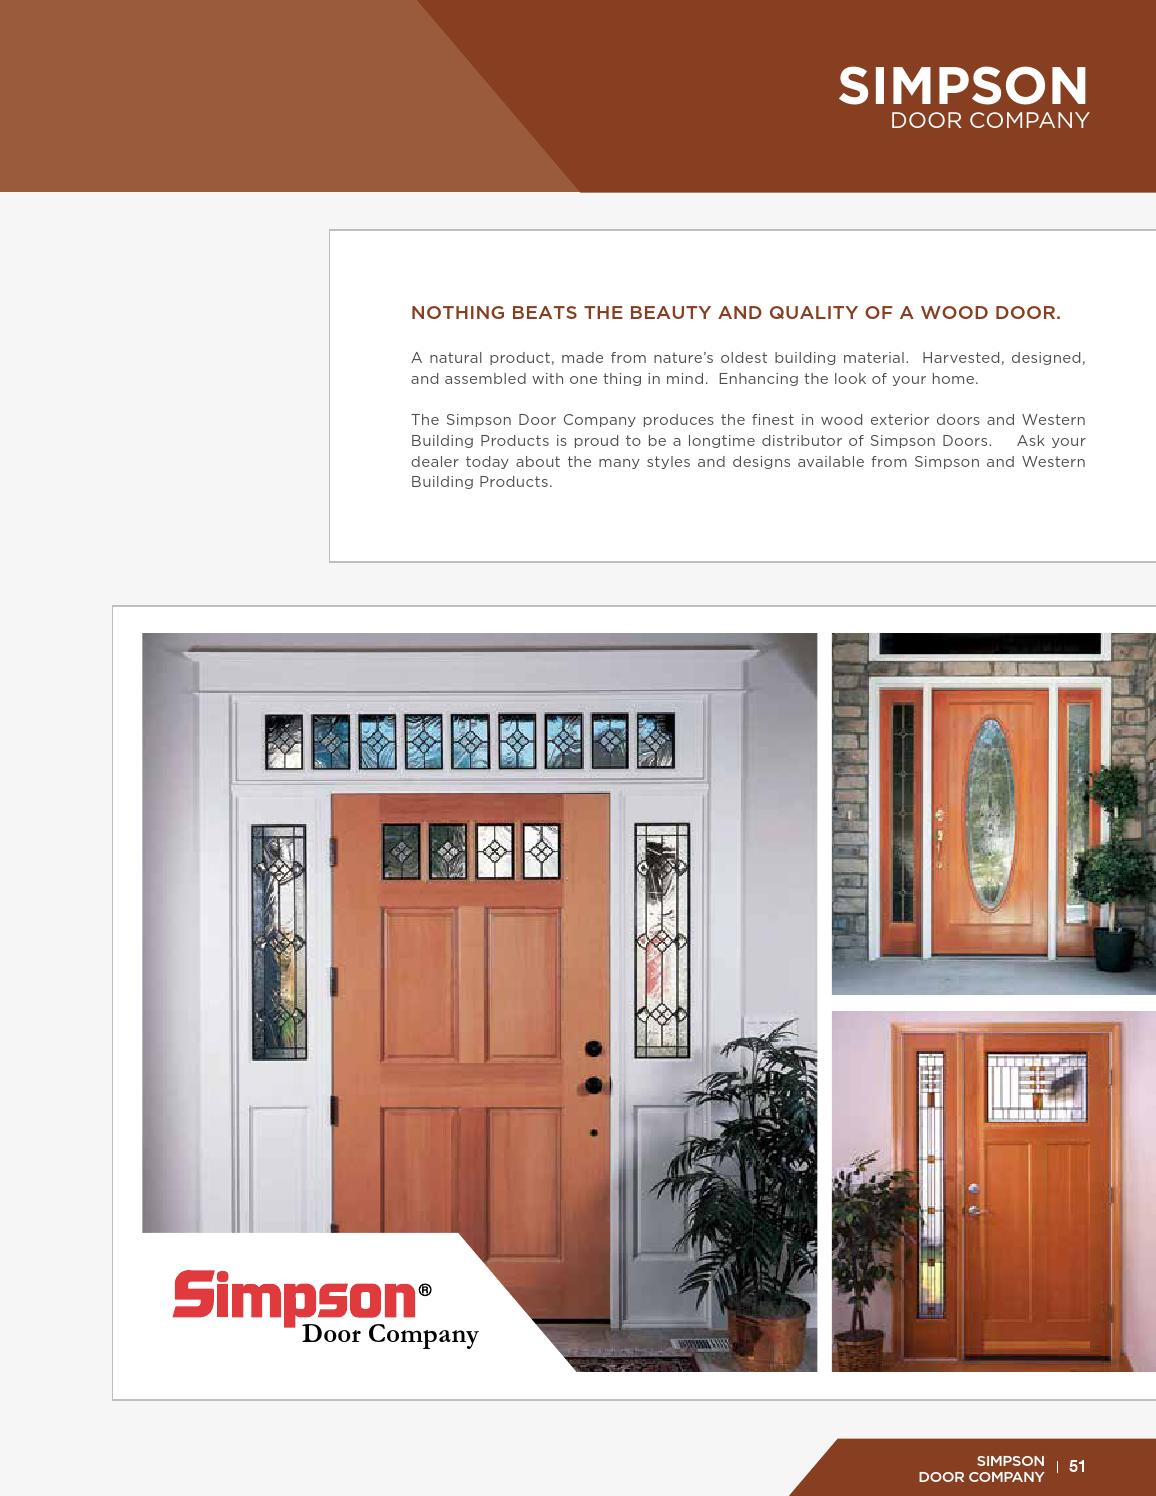 Western Entry System Brochure By Western Building Products Issuu